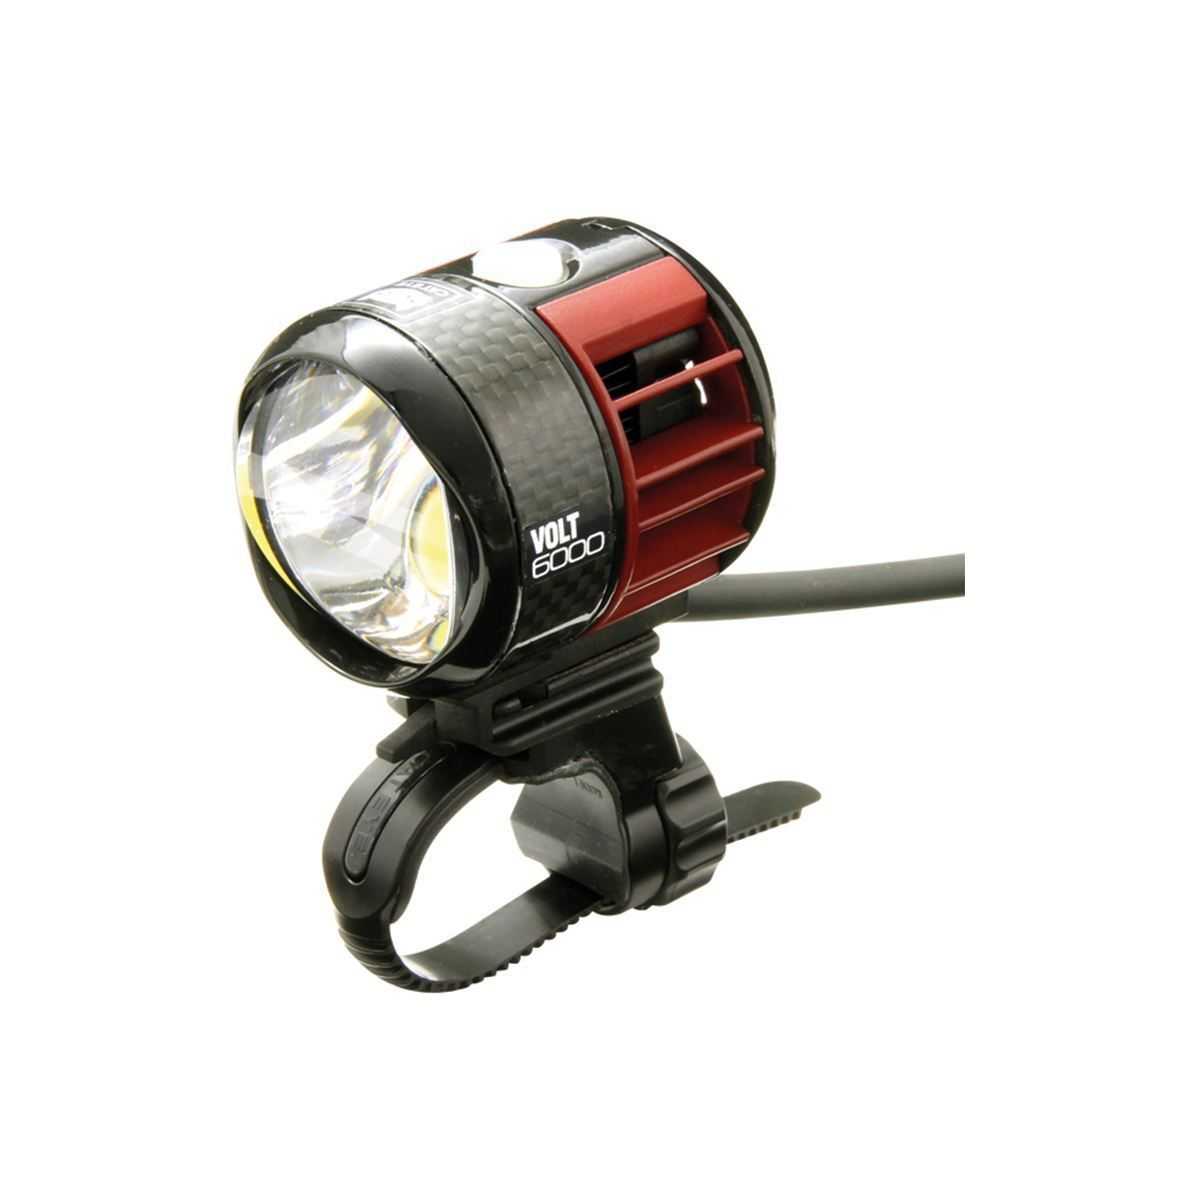 Bike Front Light Cateye Volt 6000 Rechargeable 6000  Lumen Head Lamp LED  the latest